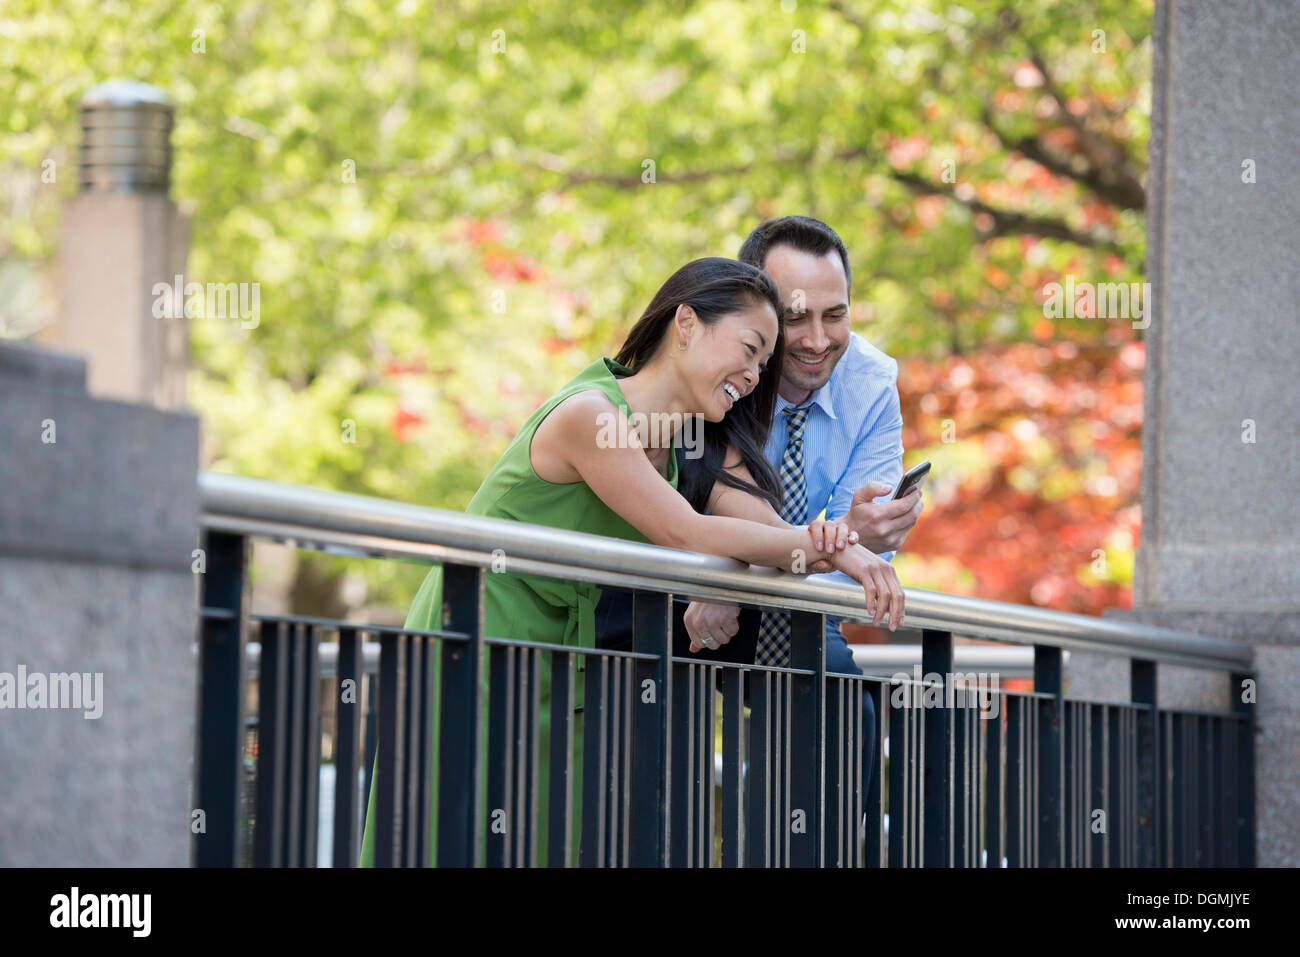 A couple, man and woman checking a smart phone, under the shade of trees in the park. - Stock Image